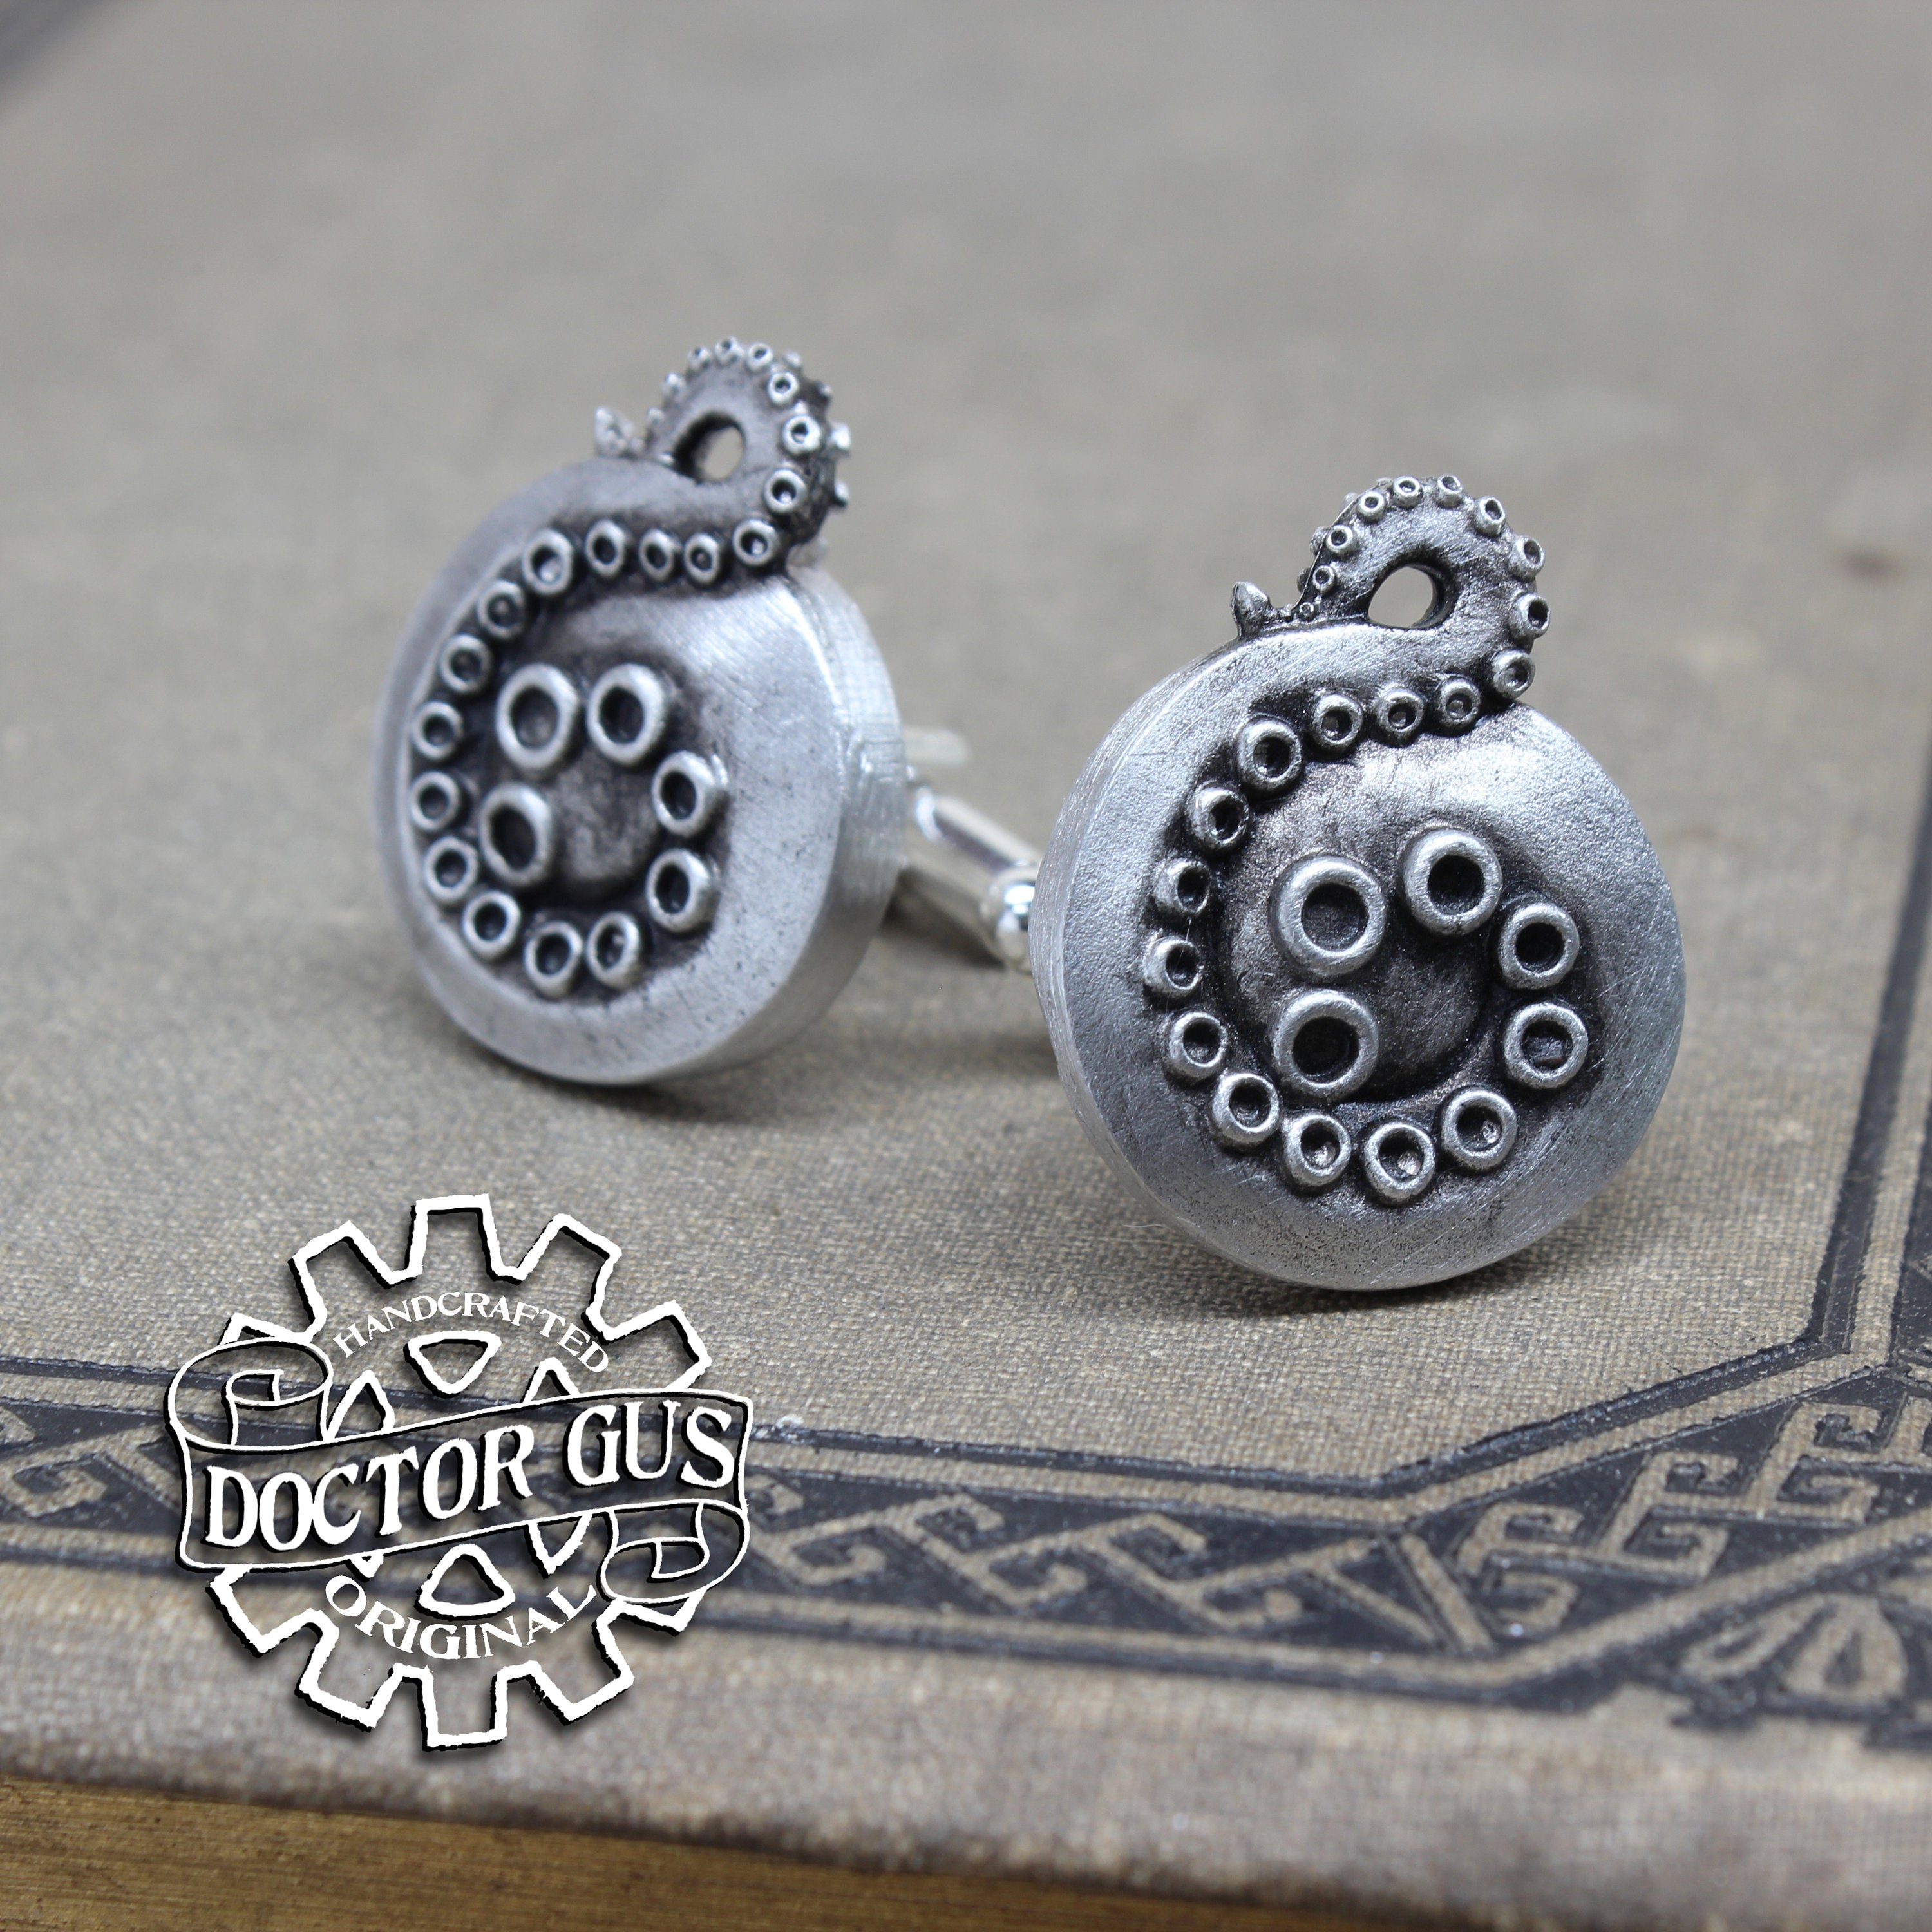 Tentacle Cuff Links - Cthulhu Cephalopod Accessories by Doctor Gus - Suit and Tie - Men's Gifts - Octopus Lovecraft Steampunk Wedding Groom